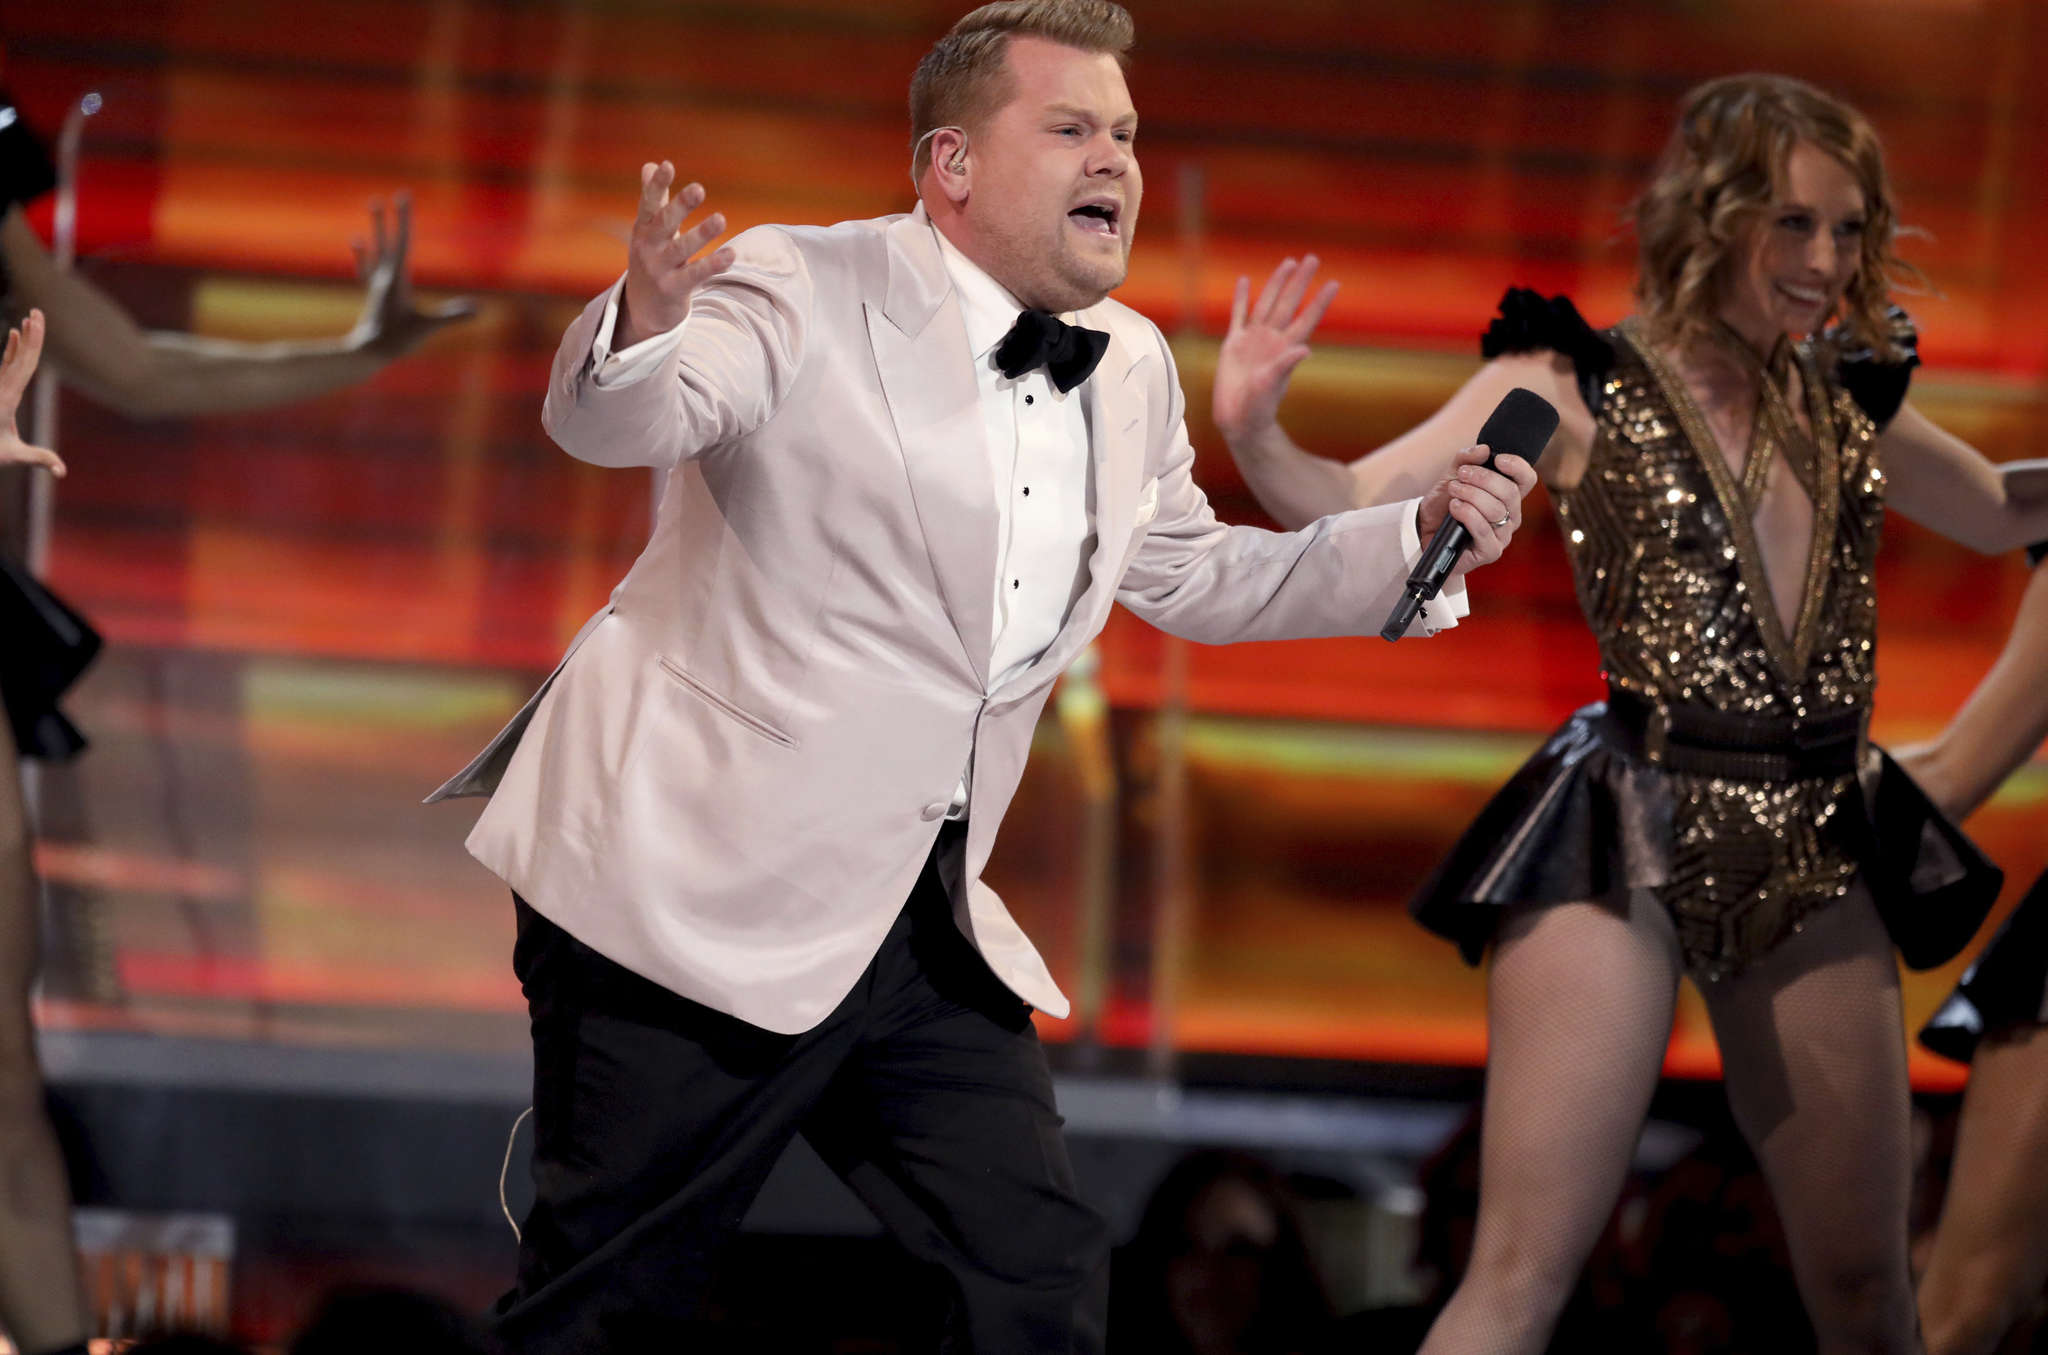 James Corden rapped, did a comic pratfall, cracked jokes about nominees, and took a political shot or two.